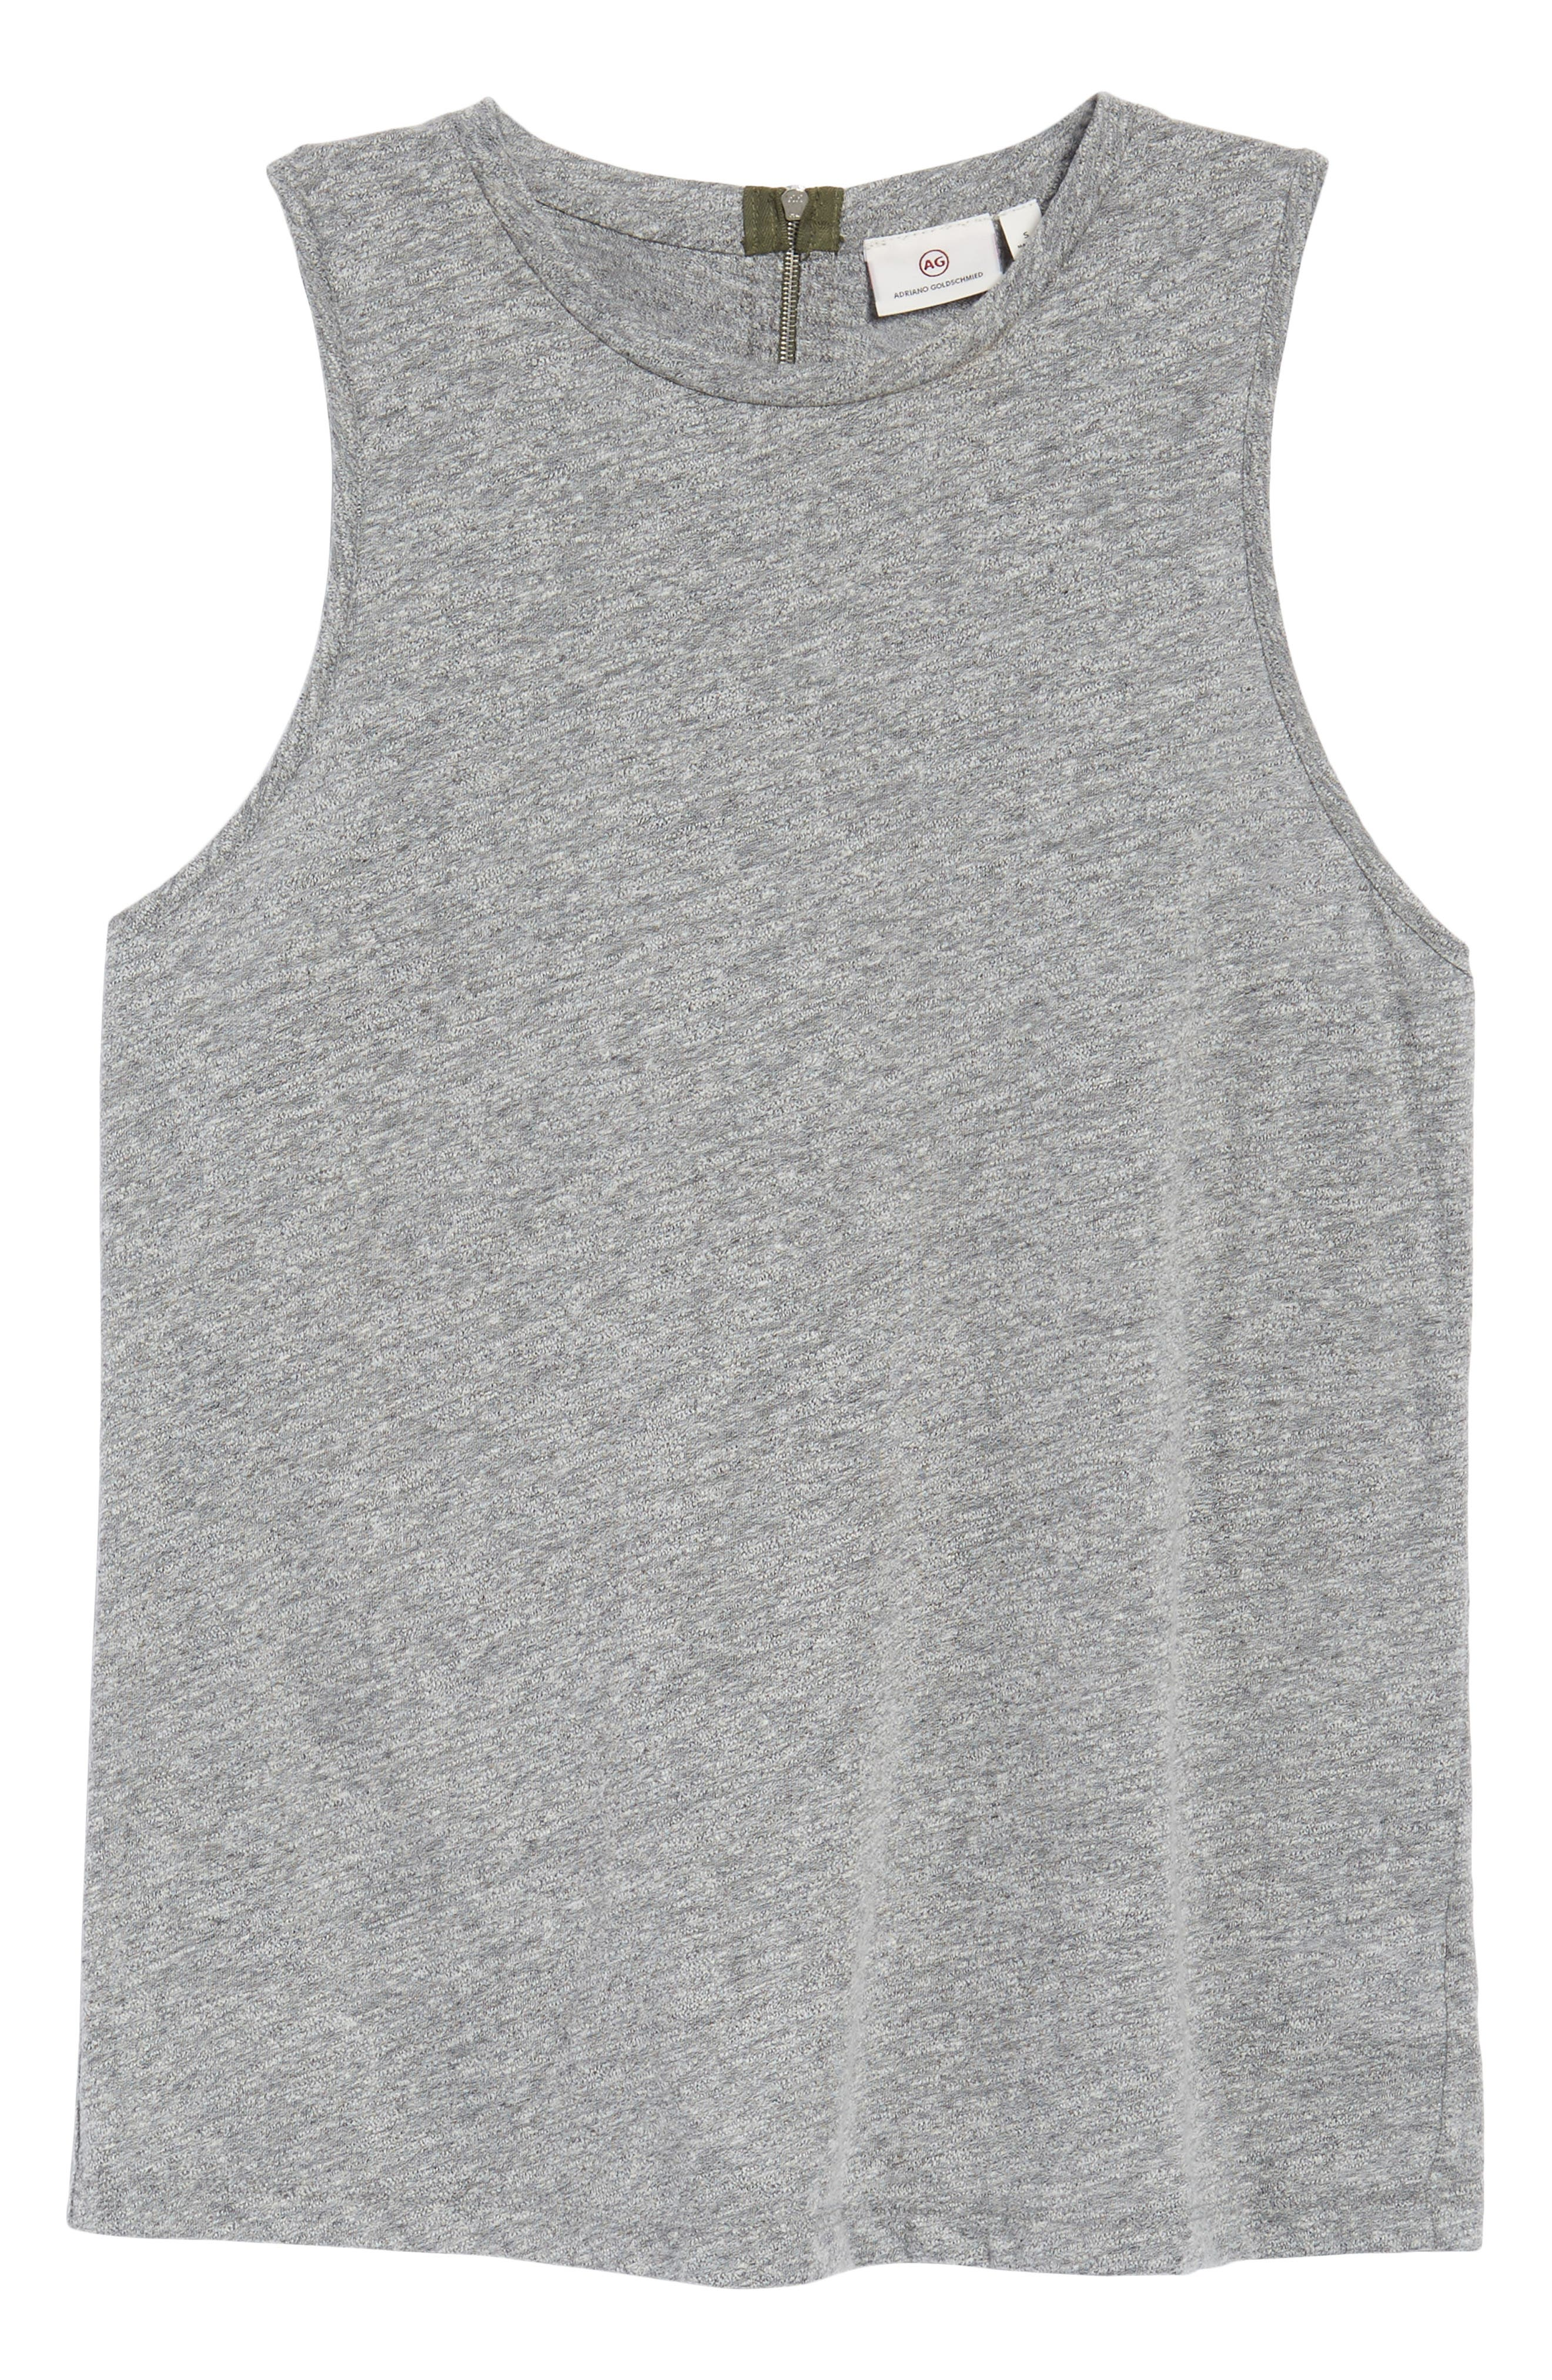 Serena Tank,                             Alternate thumbnail 6, color,                             Speckled Heather Gray